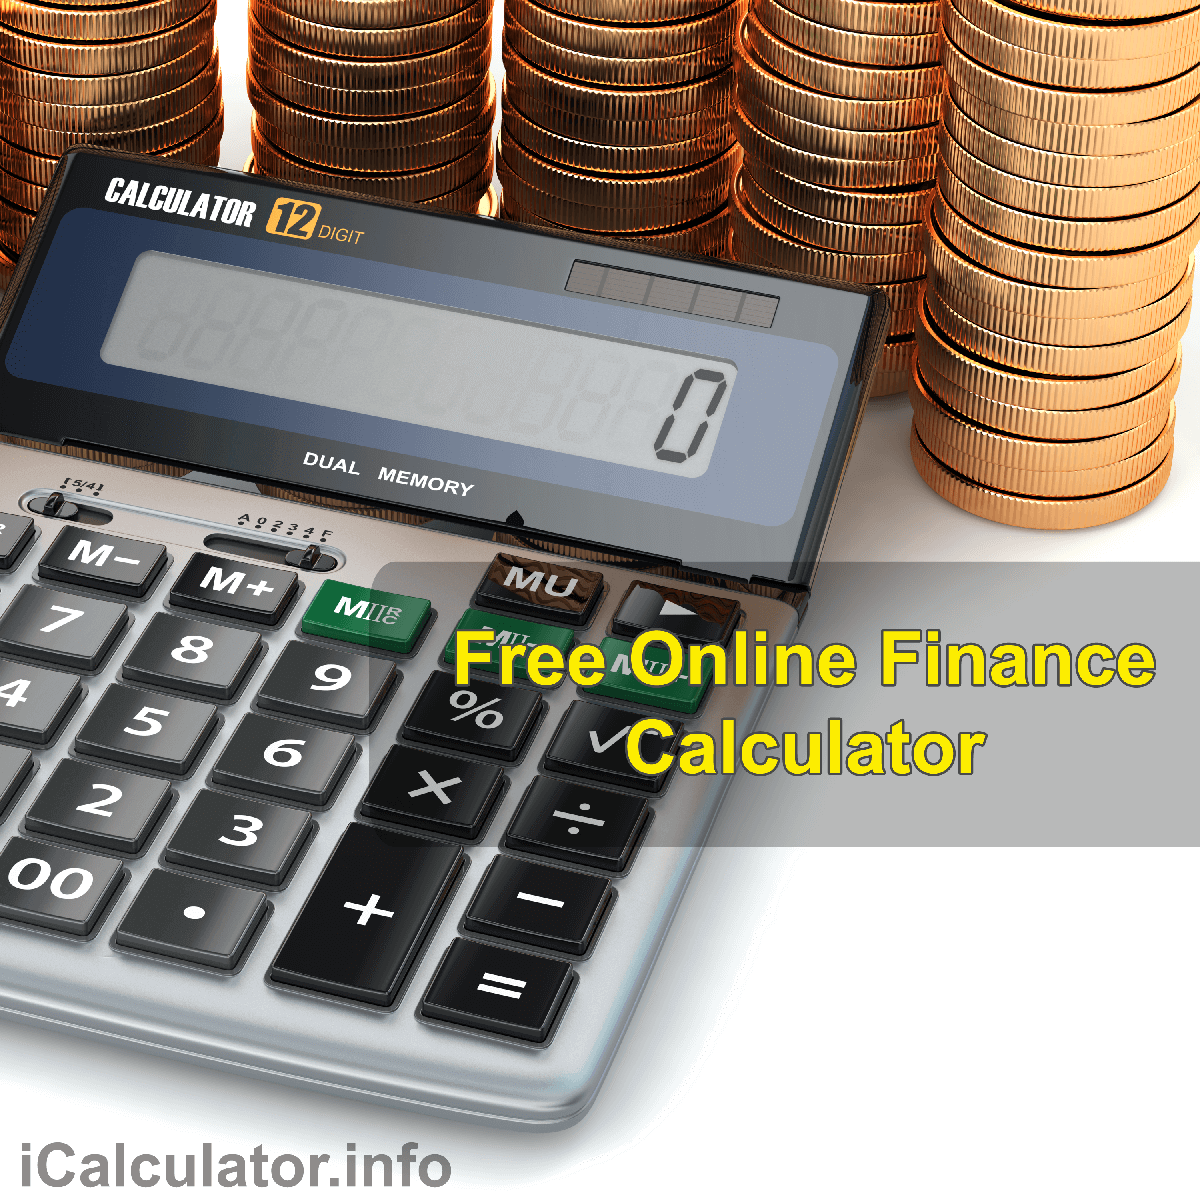 ROTH IRA Calculator. This image provides details of how to calculate and compare ROTH IRA using a calculator and notepad. By using theROTH IRA formula, the ROTH IRA Calculator provides a true calculation of the value of an asset over time when factoring in alternate accounting formulas used to calculate retirement funds under ROTH IRA